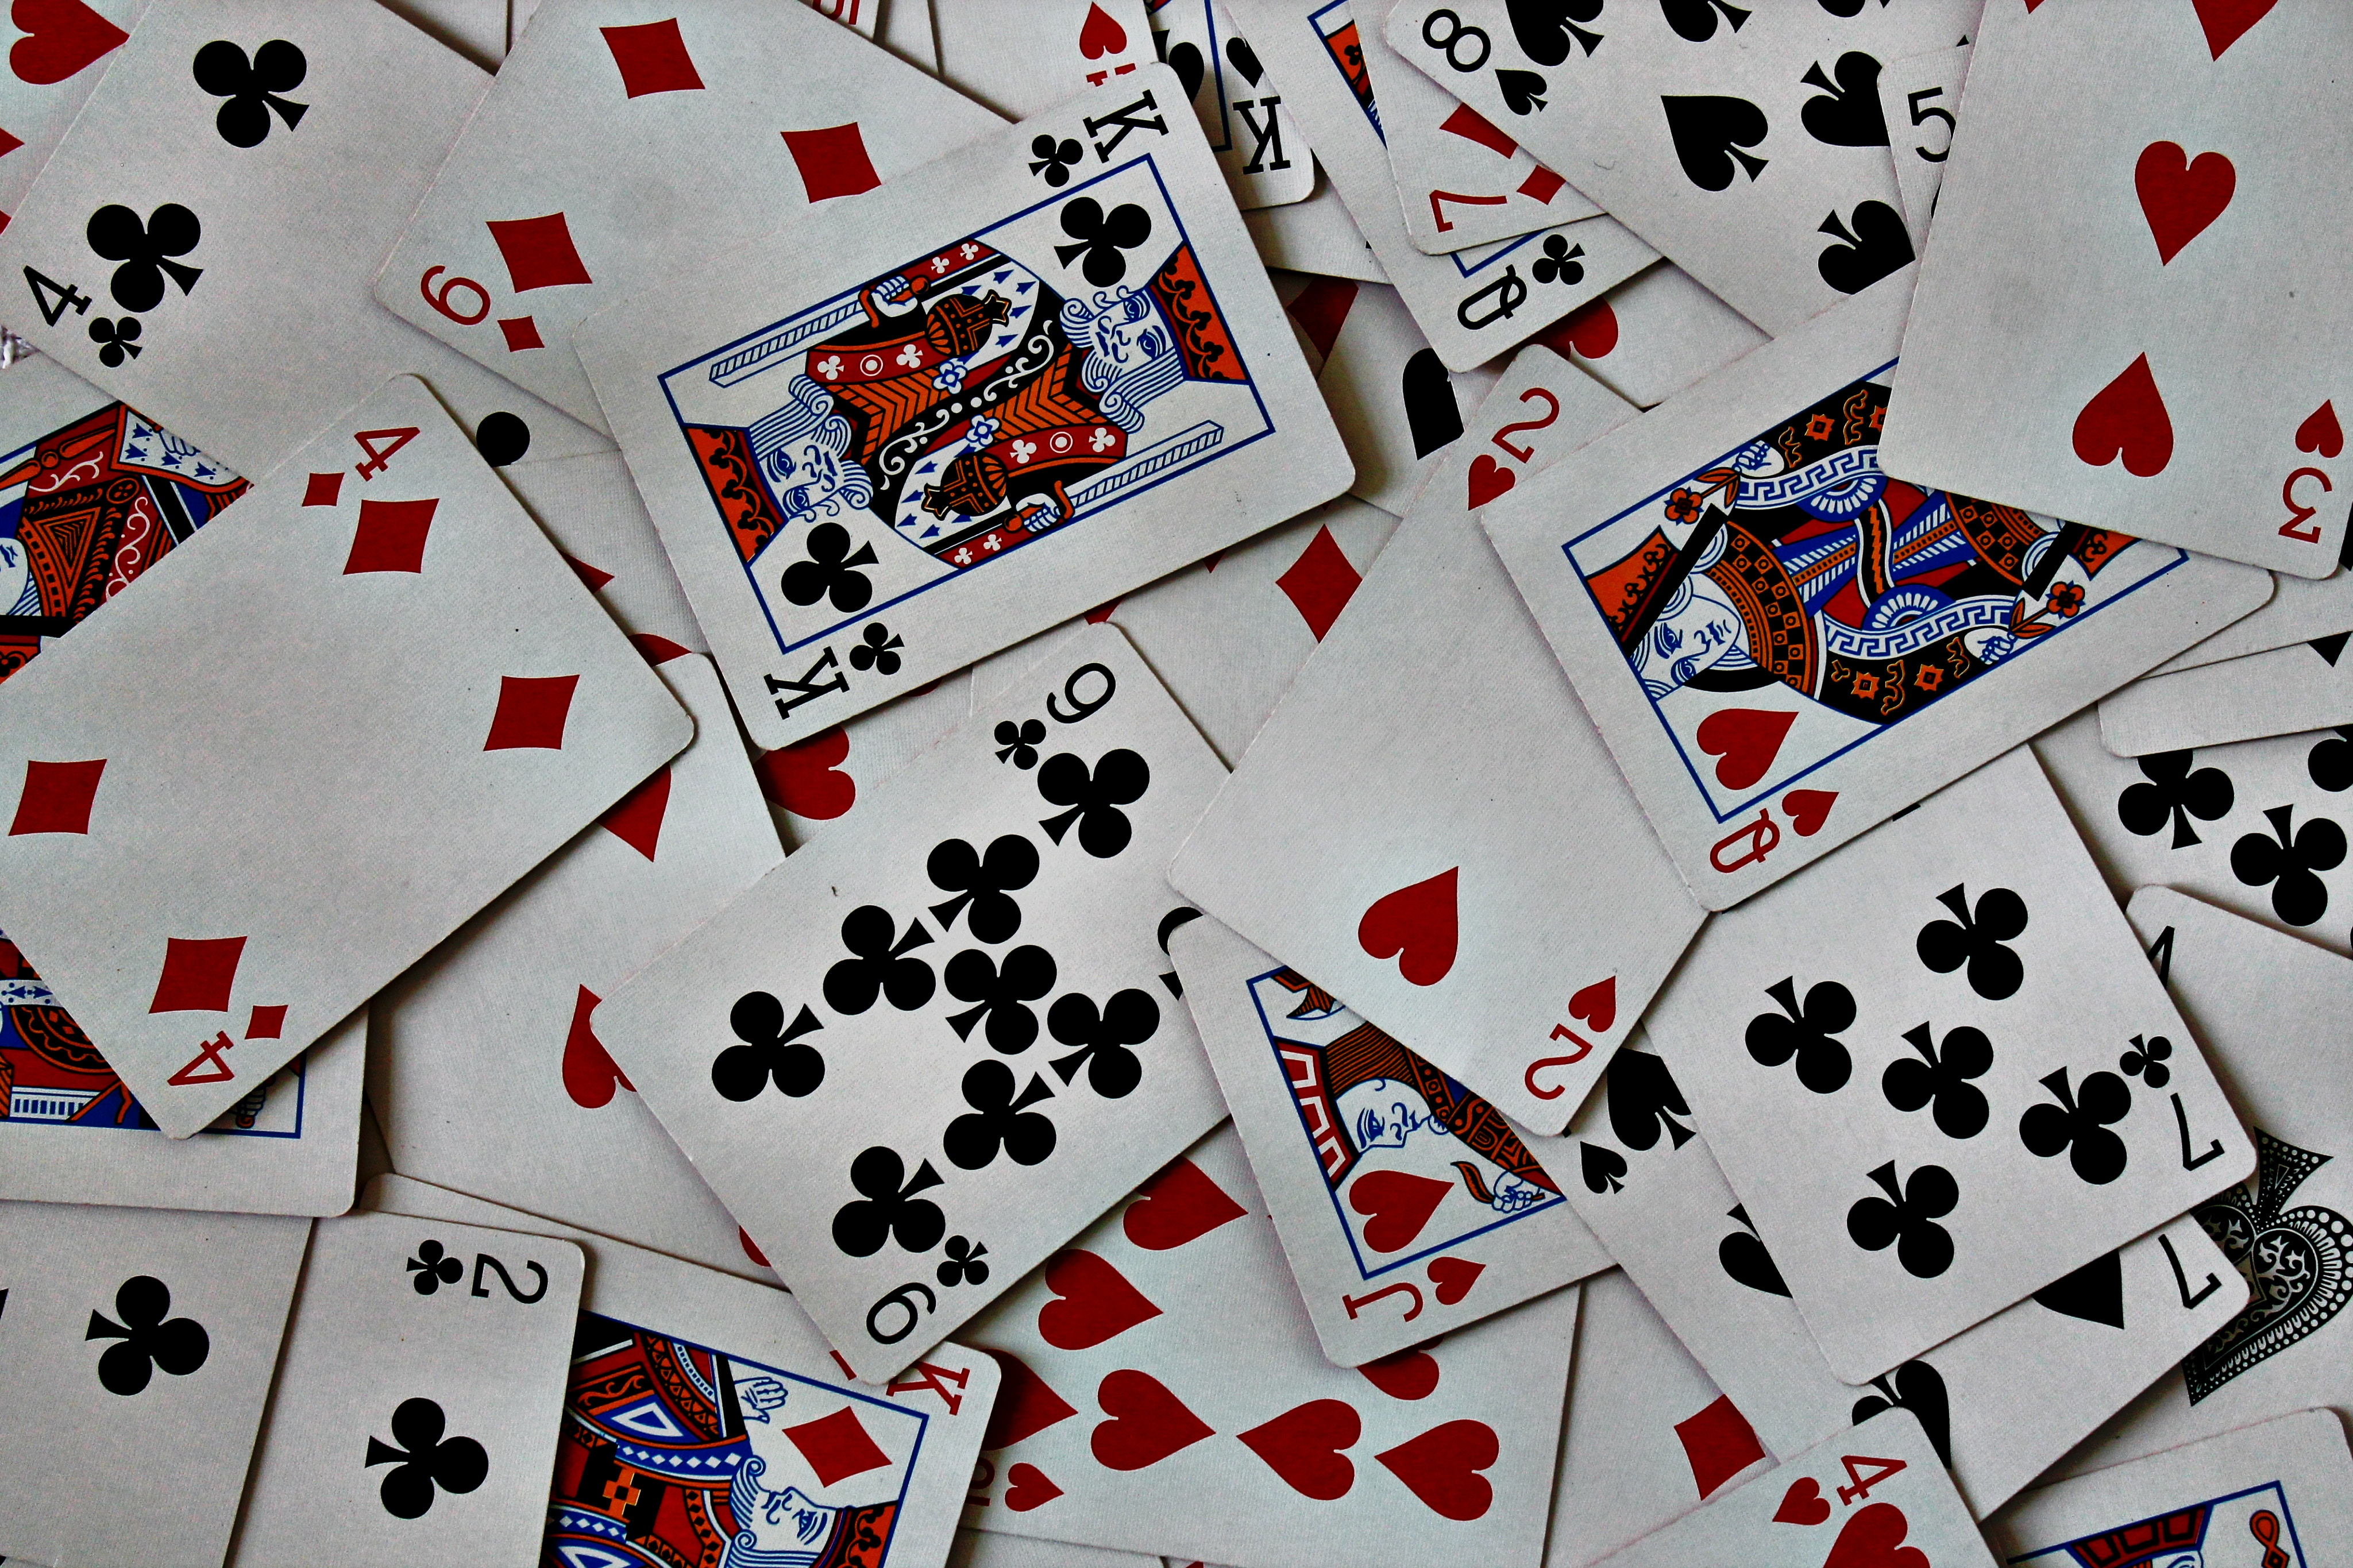 some cards